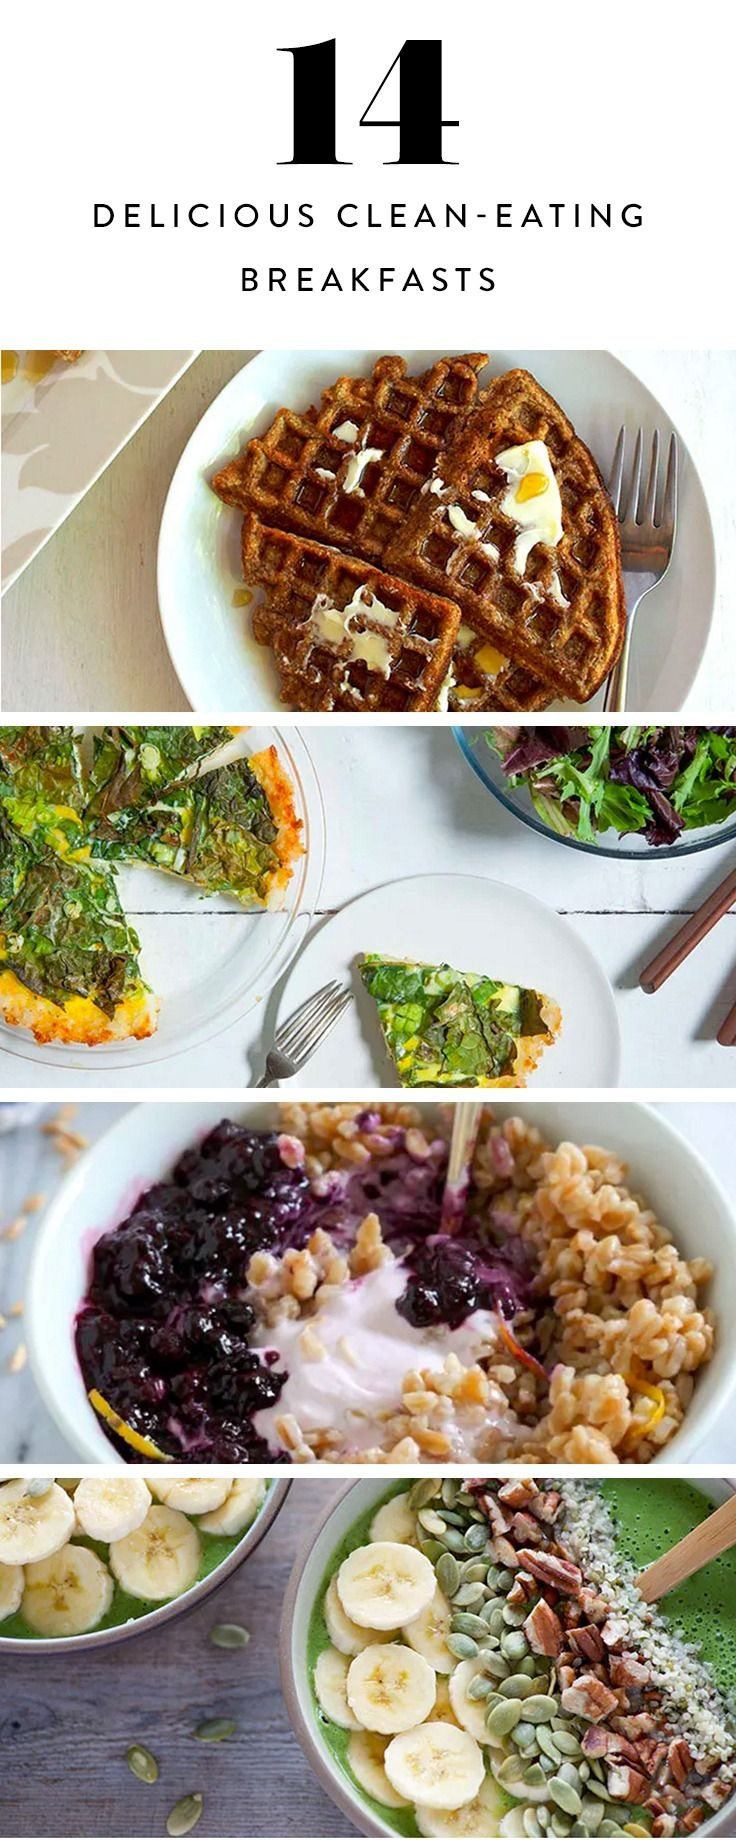 These tasty clean-eating breakfast recipes are sure to jumpstart your morning.